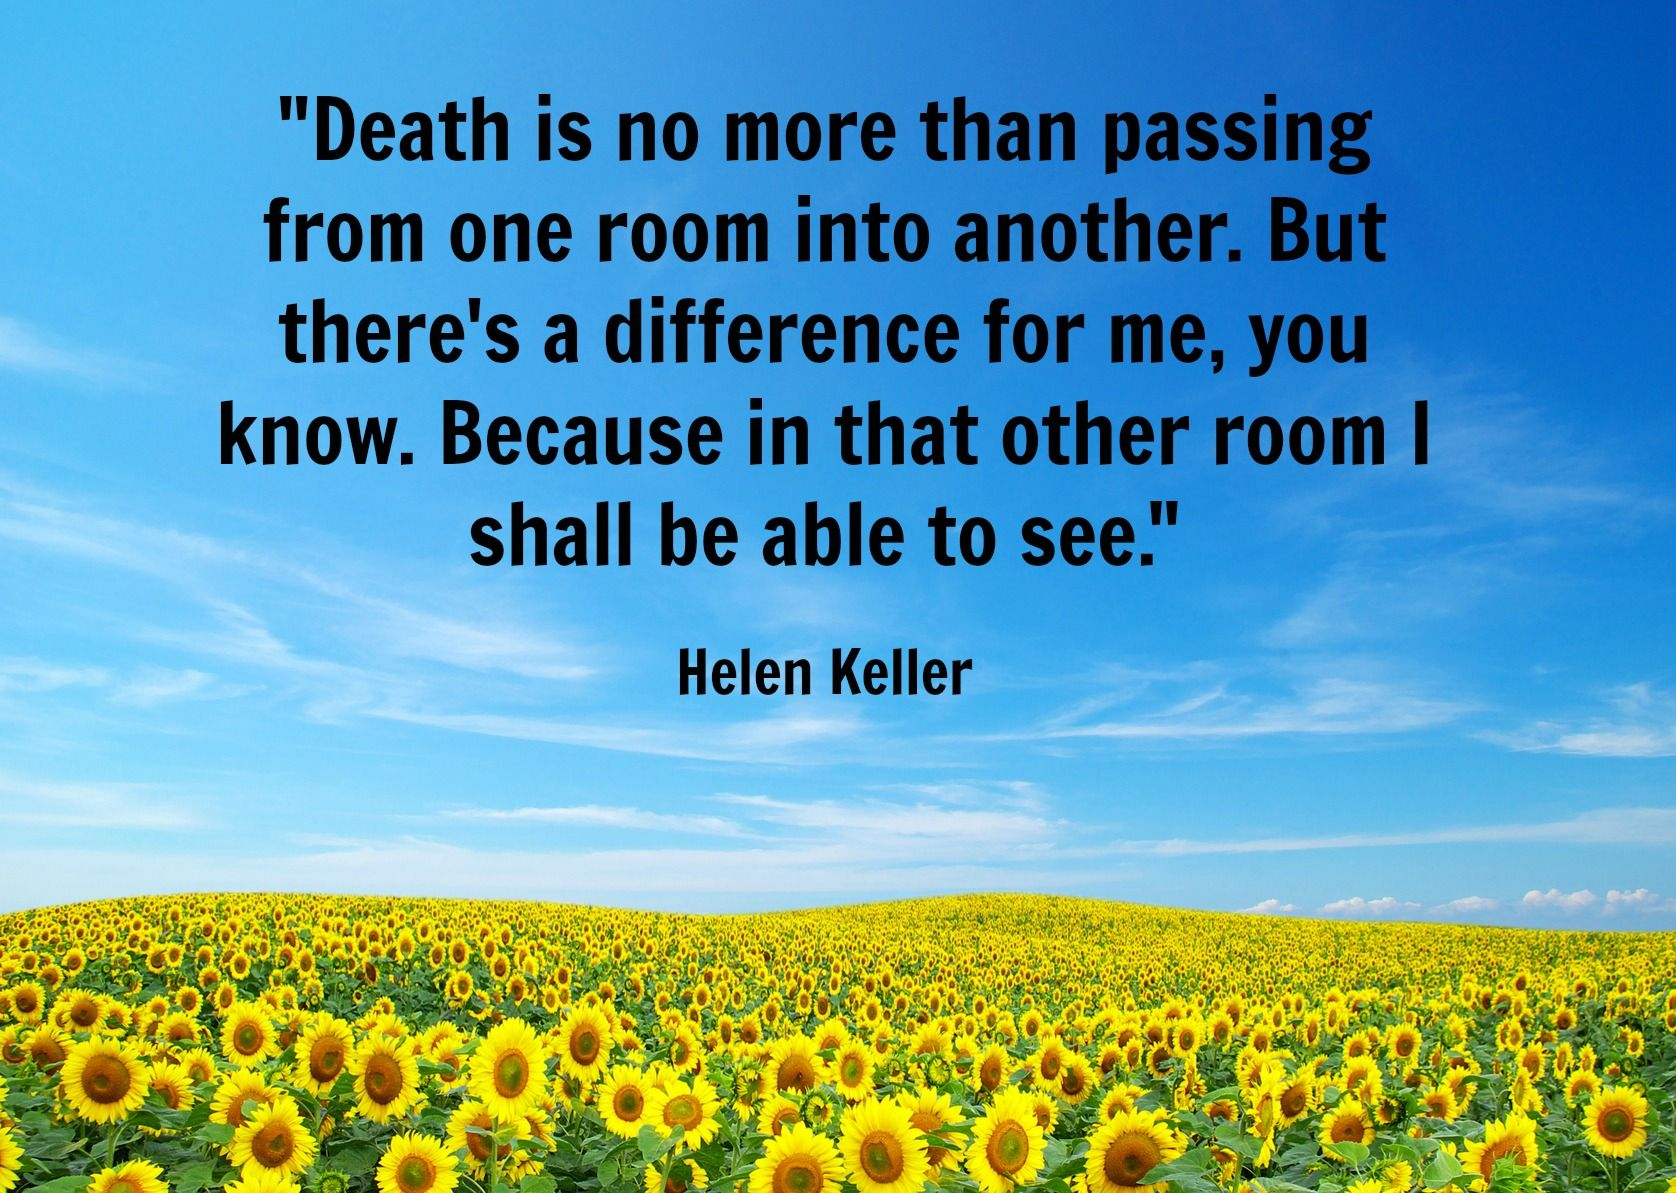 Found This Amazing Quote By Helen Keller The Best Part Is That All